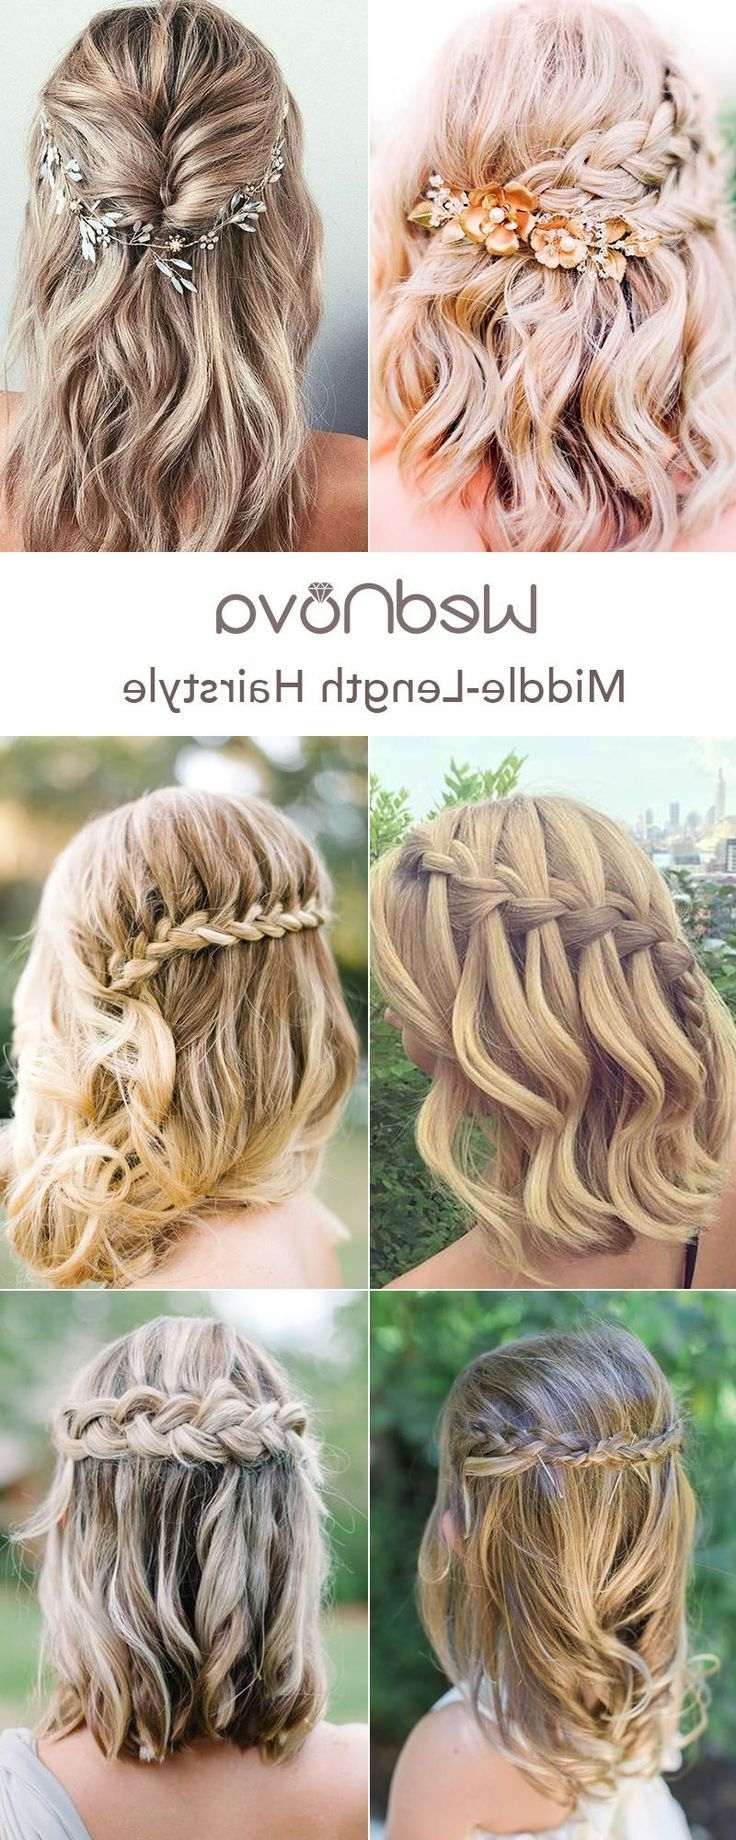 48 Easy Wedding Hairstyles Best Guide For Your Bridesmaids 30+ Awesome Easy Wedding Hairstyles For Medium Hair